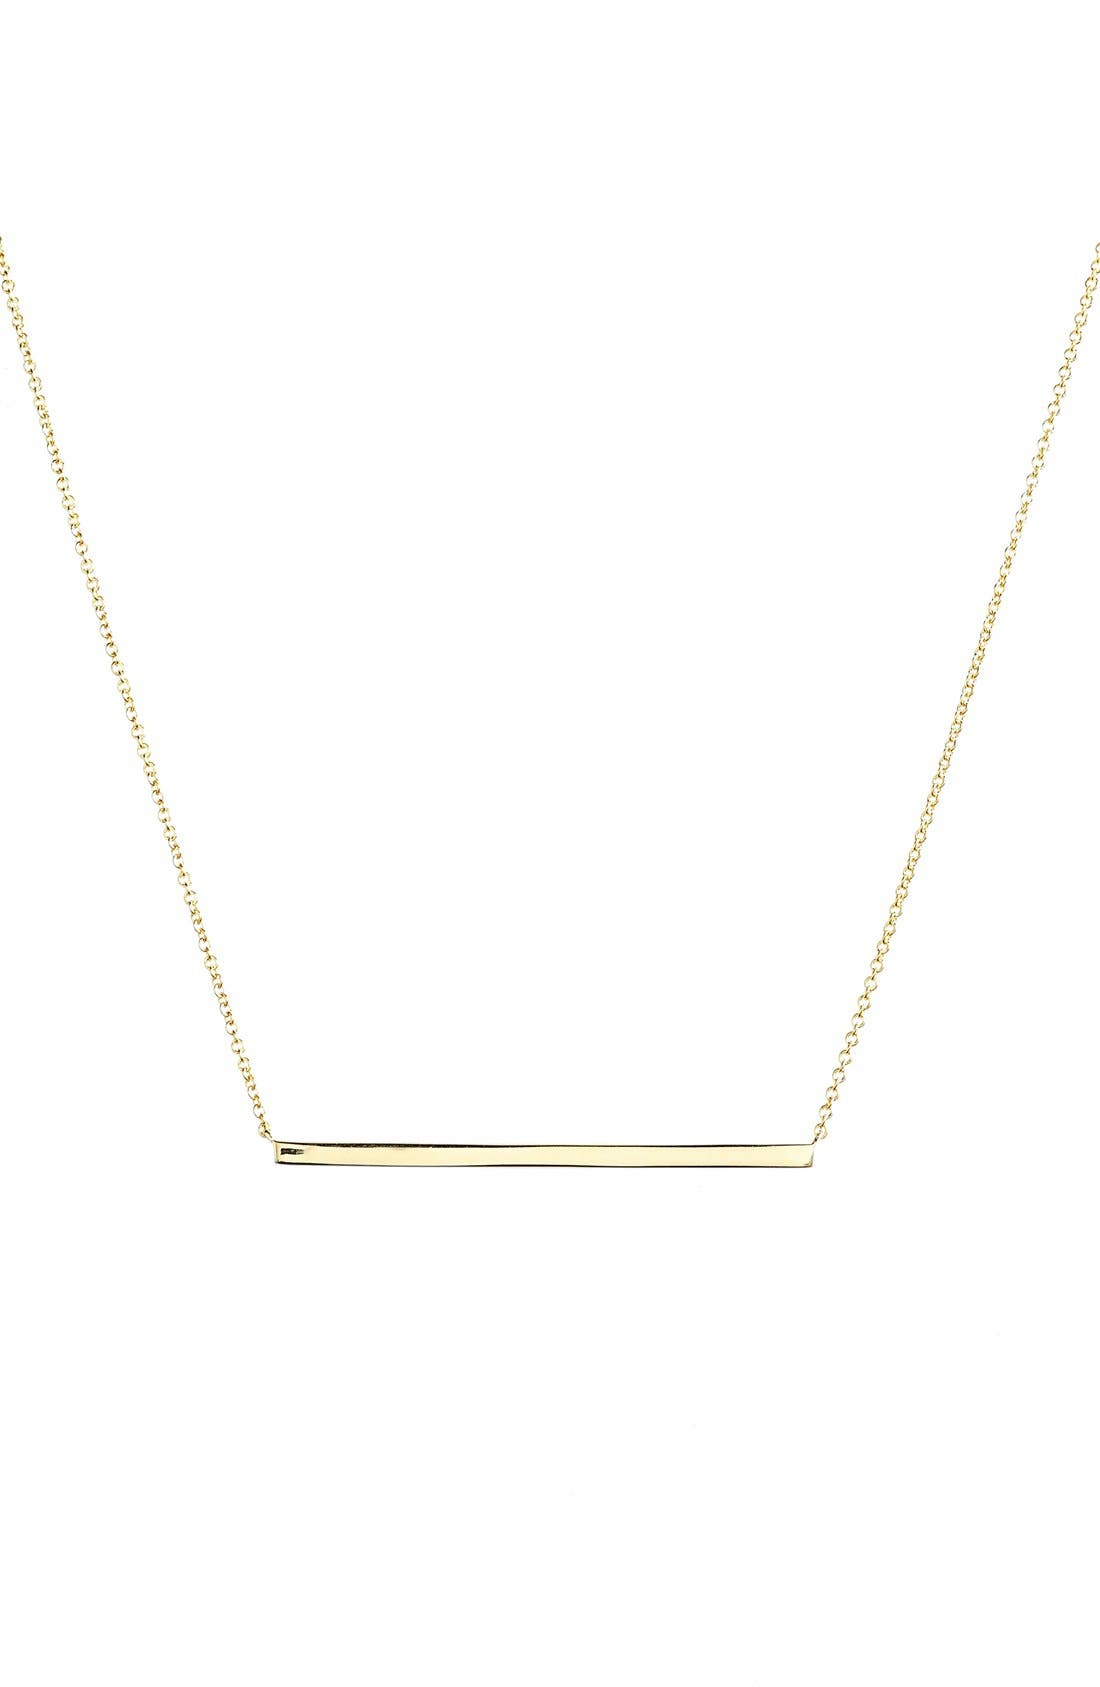 Main Image - Bony Levy 14k Gold Bar Pendant Necklace (Limited Edition) (Nordstrom Exclusive)